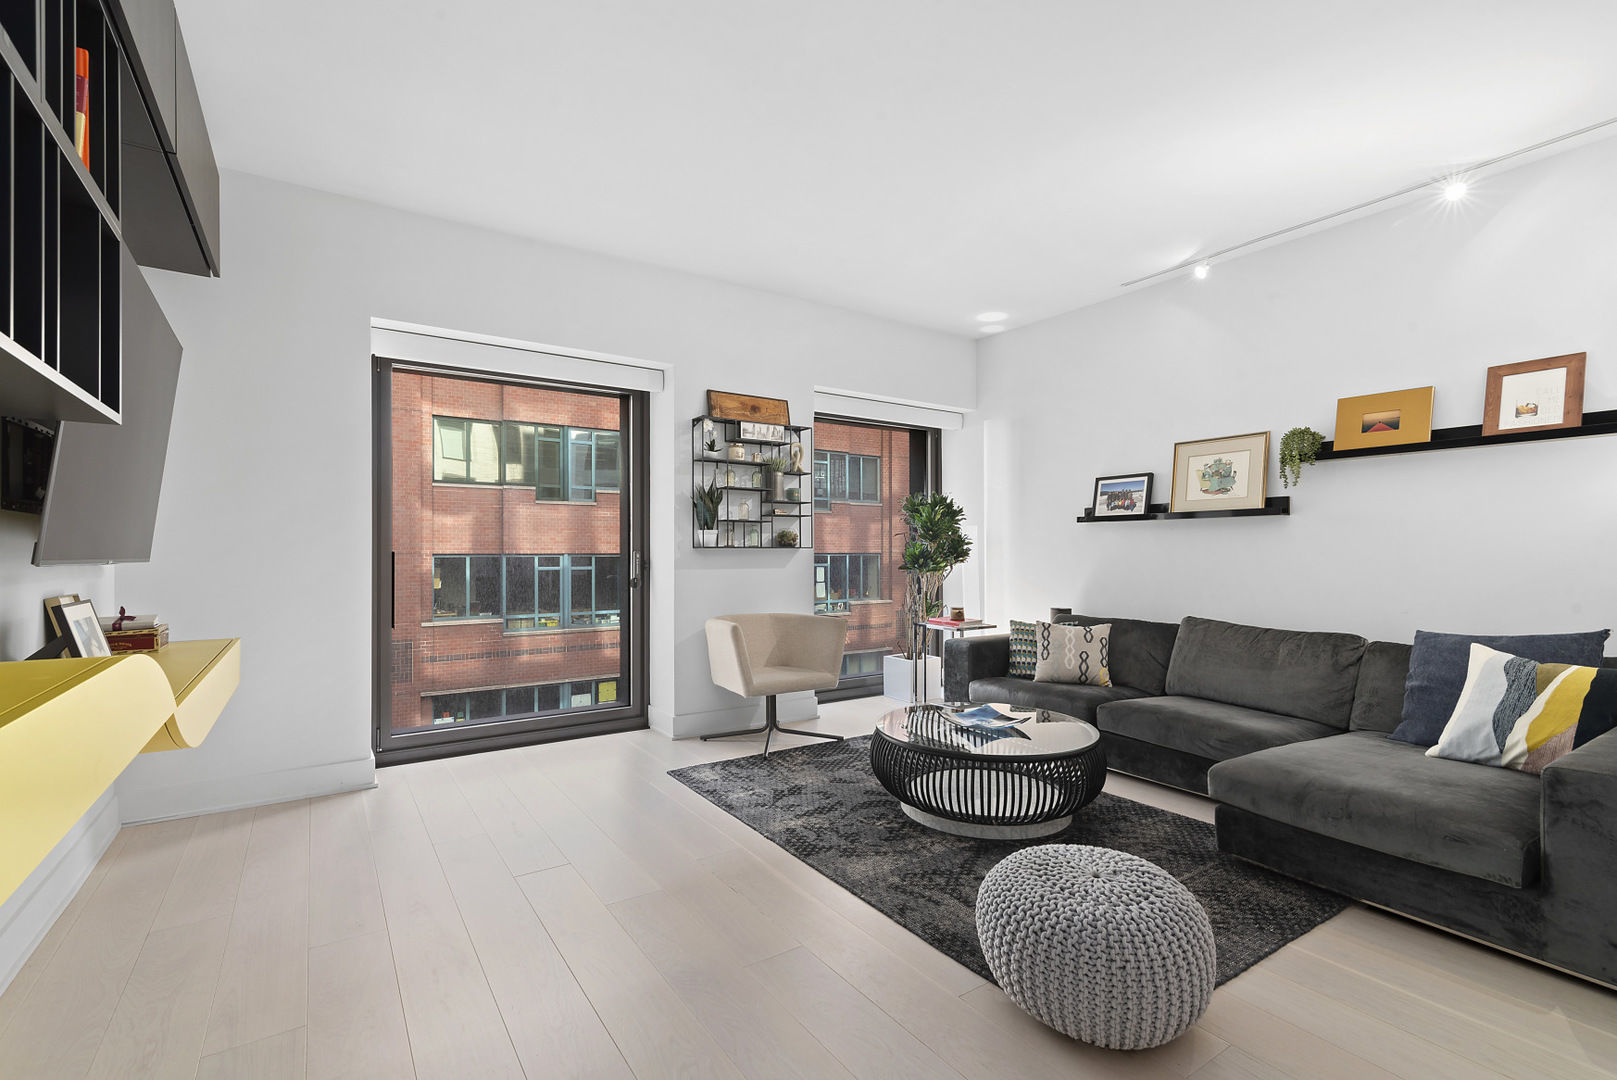 Apartment for sale at 55 West 17th Street, Apt 404